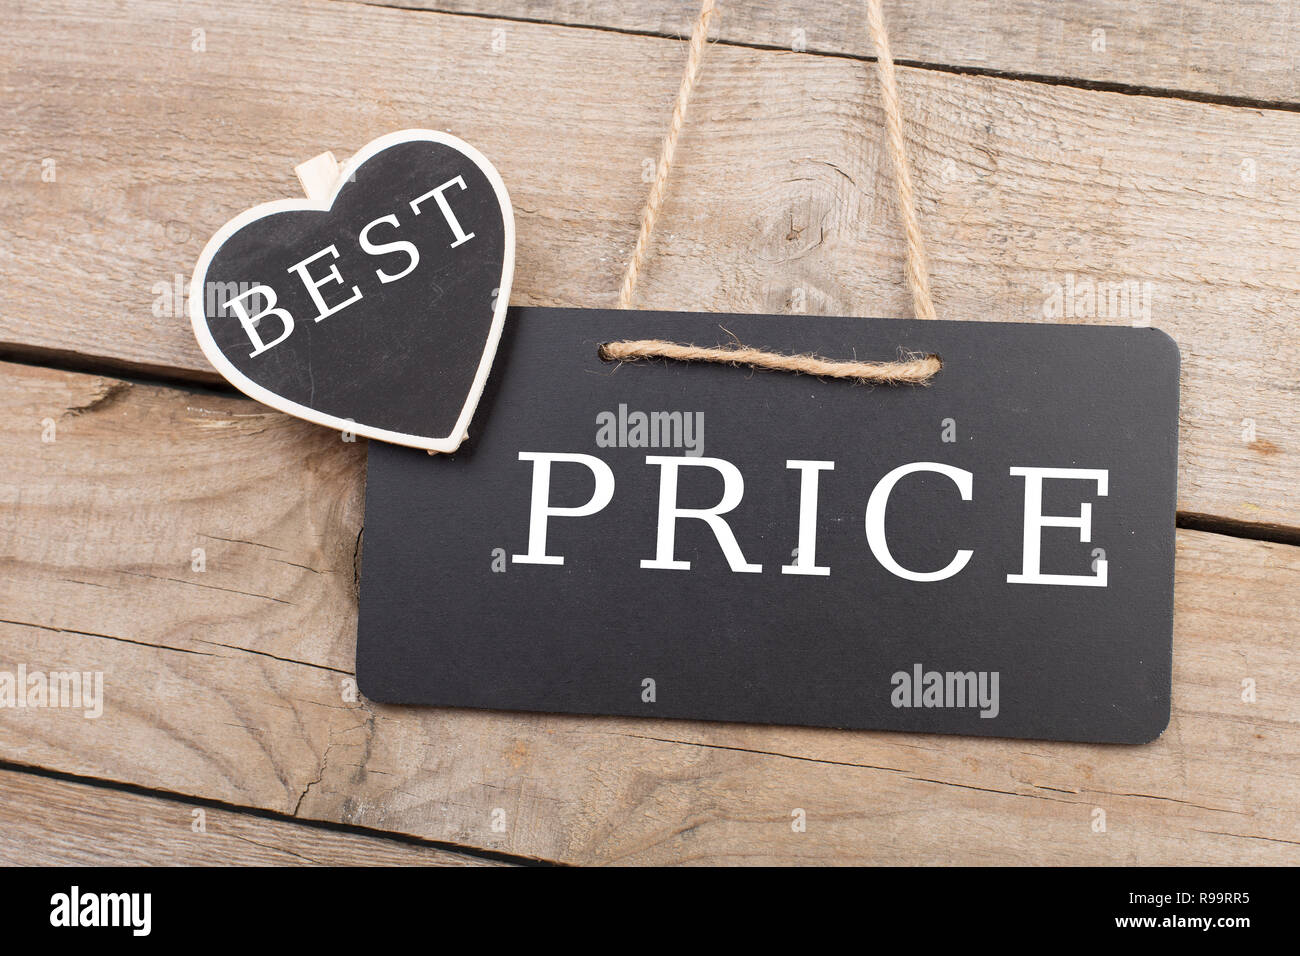 Blackboards with text 'Best prise' on wooden background - Stock Image